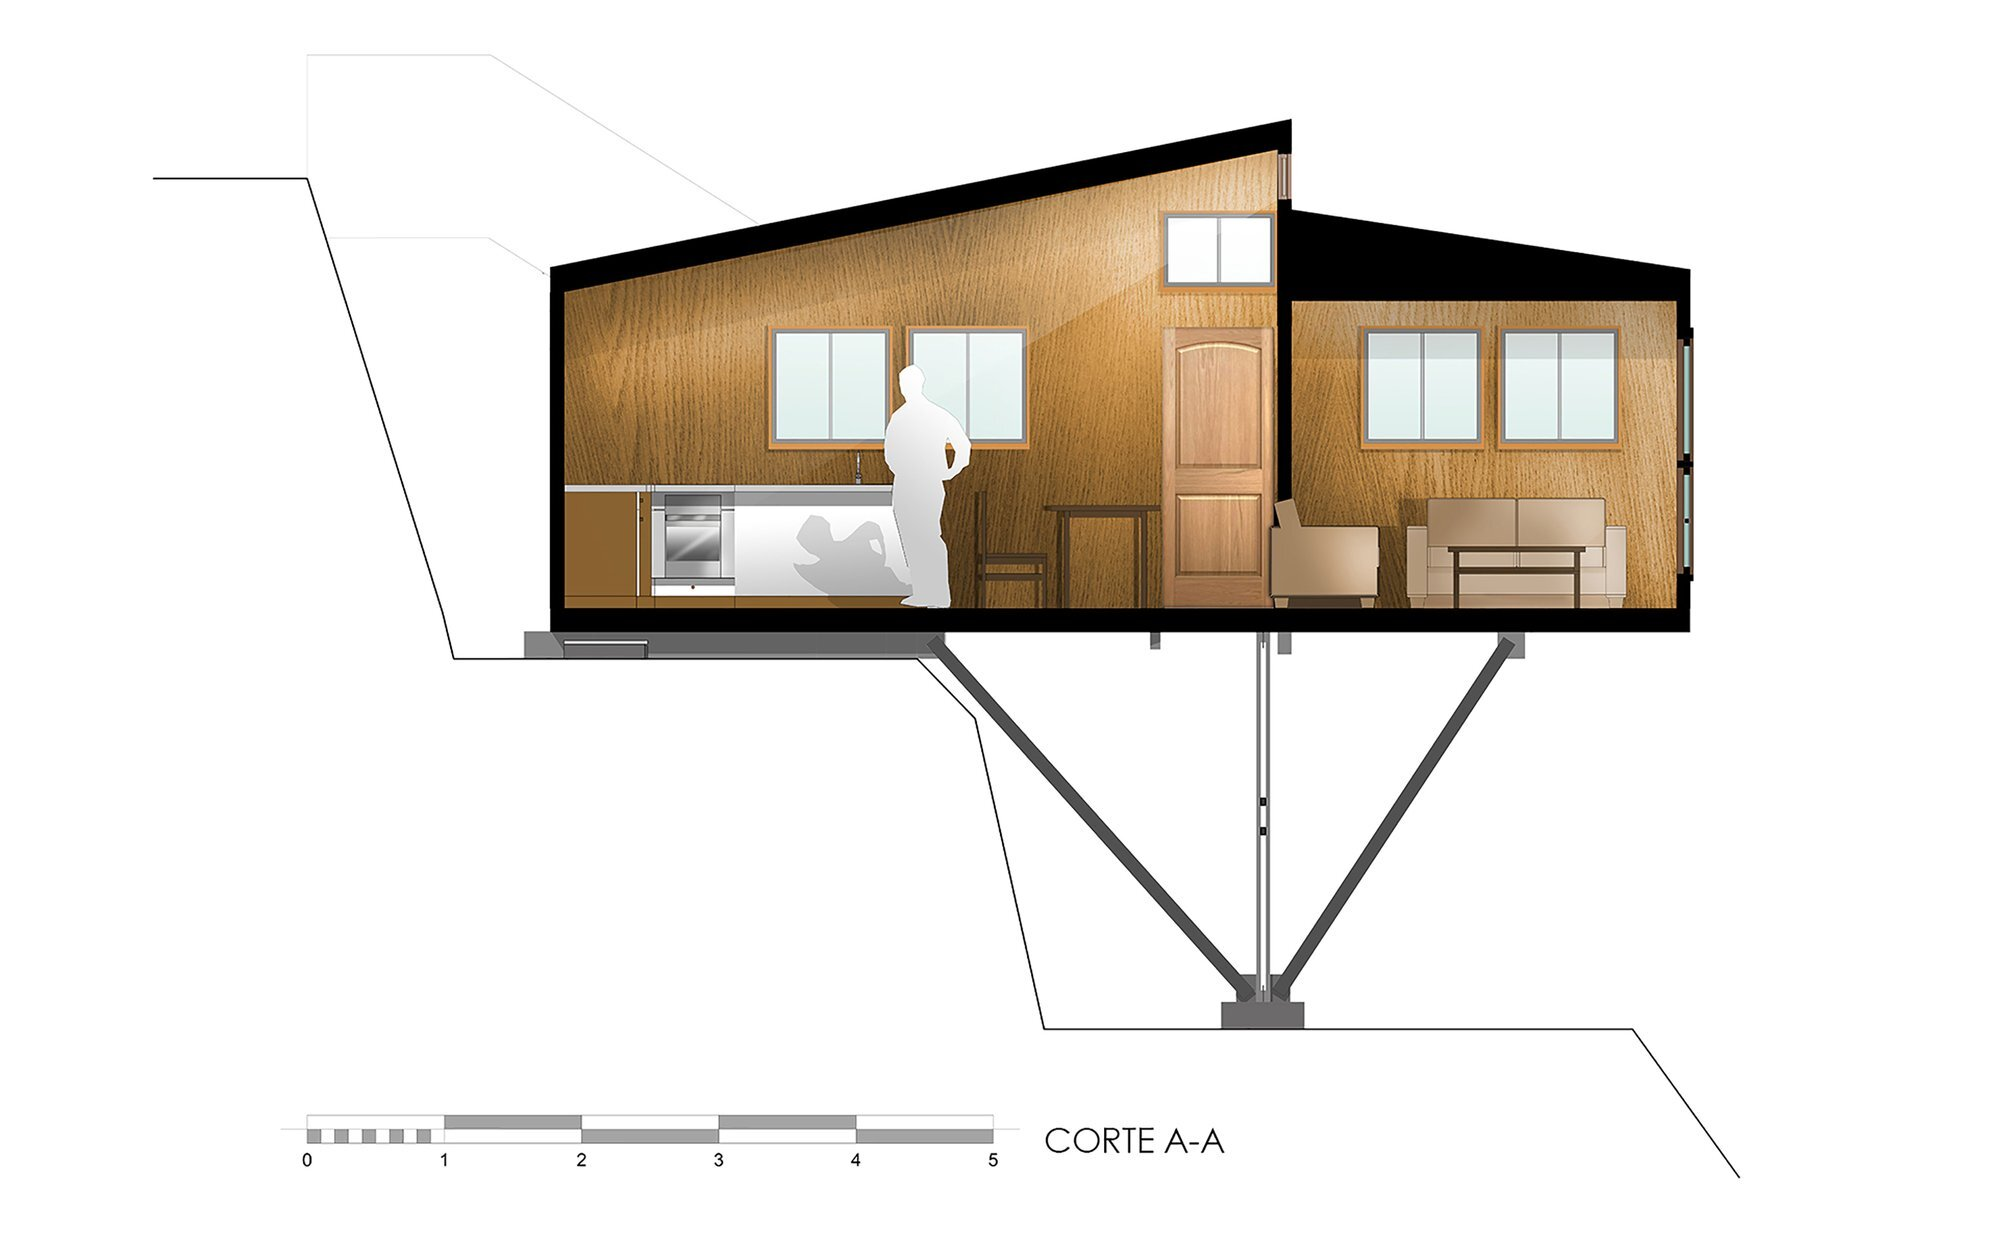 Suarez House - Arq2g arquitectura - Chile - Cross-section - Humble Homes